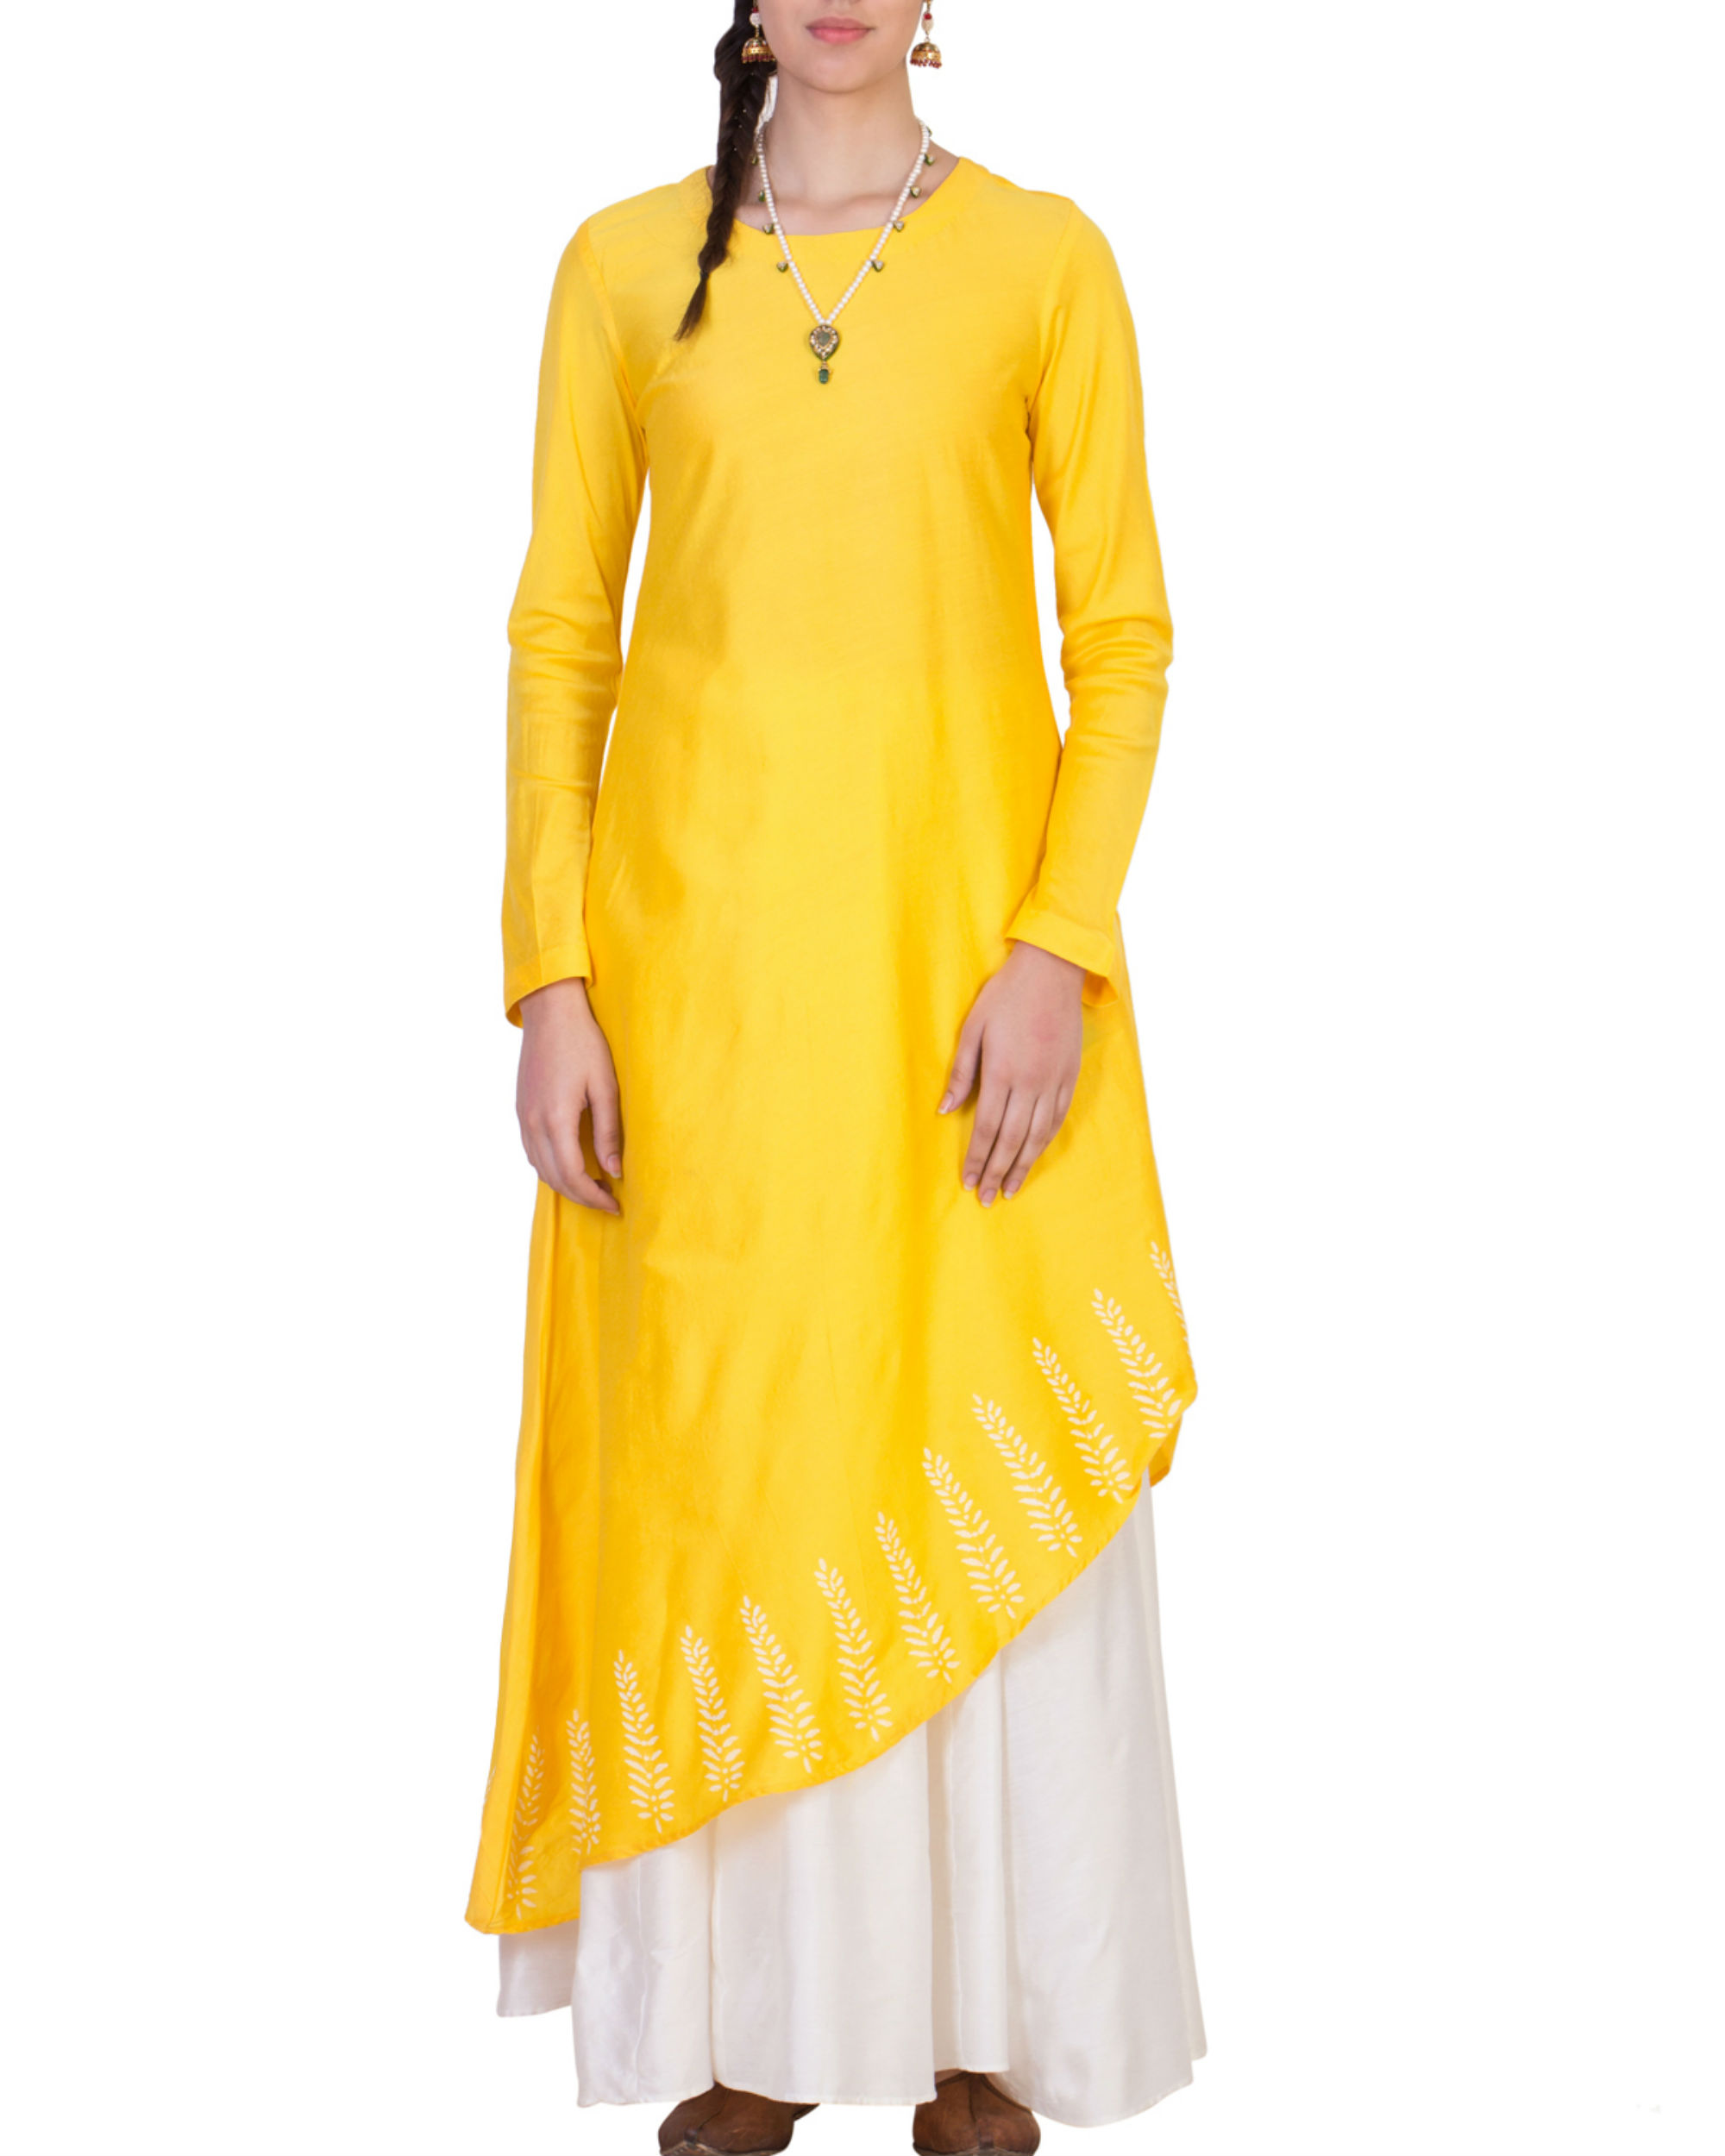 Yellow tunic with white skirt